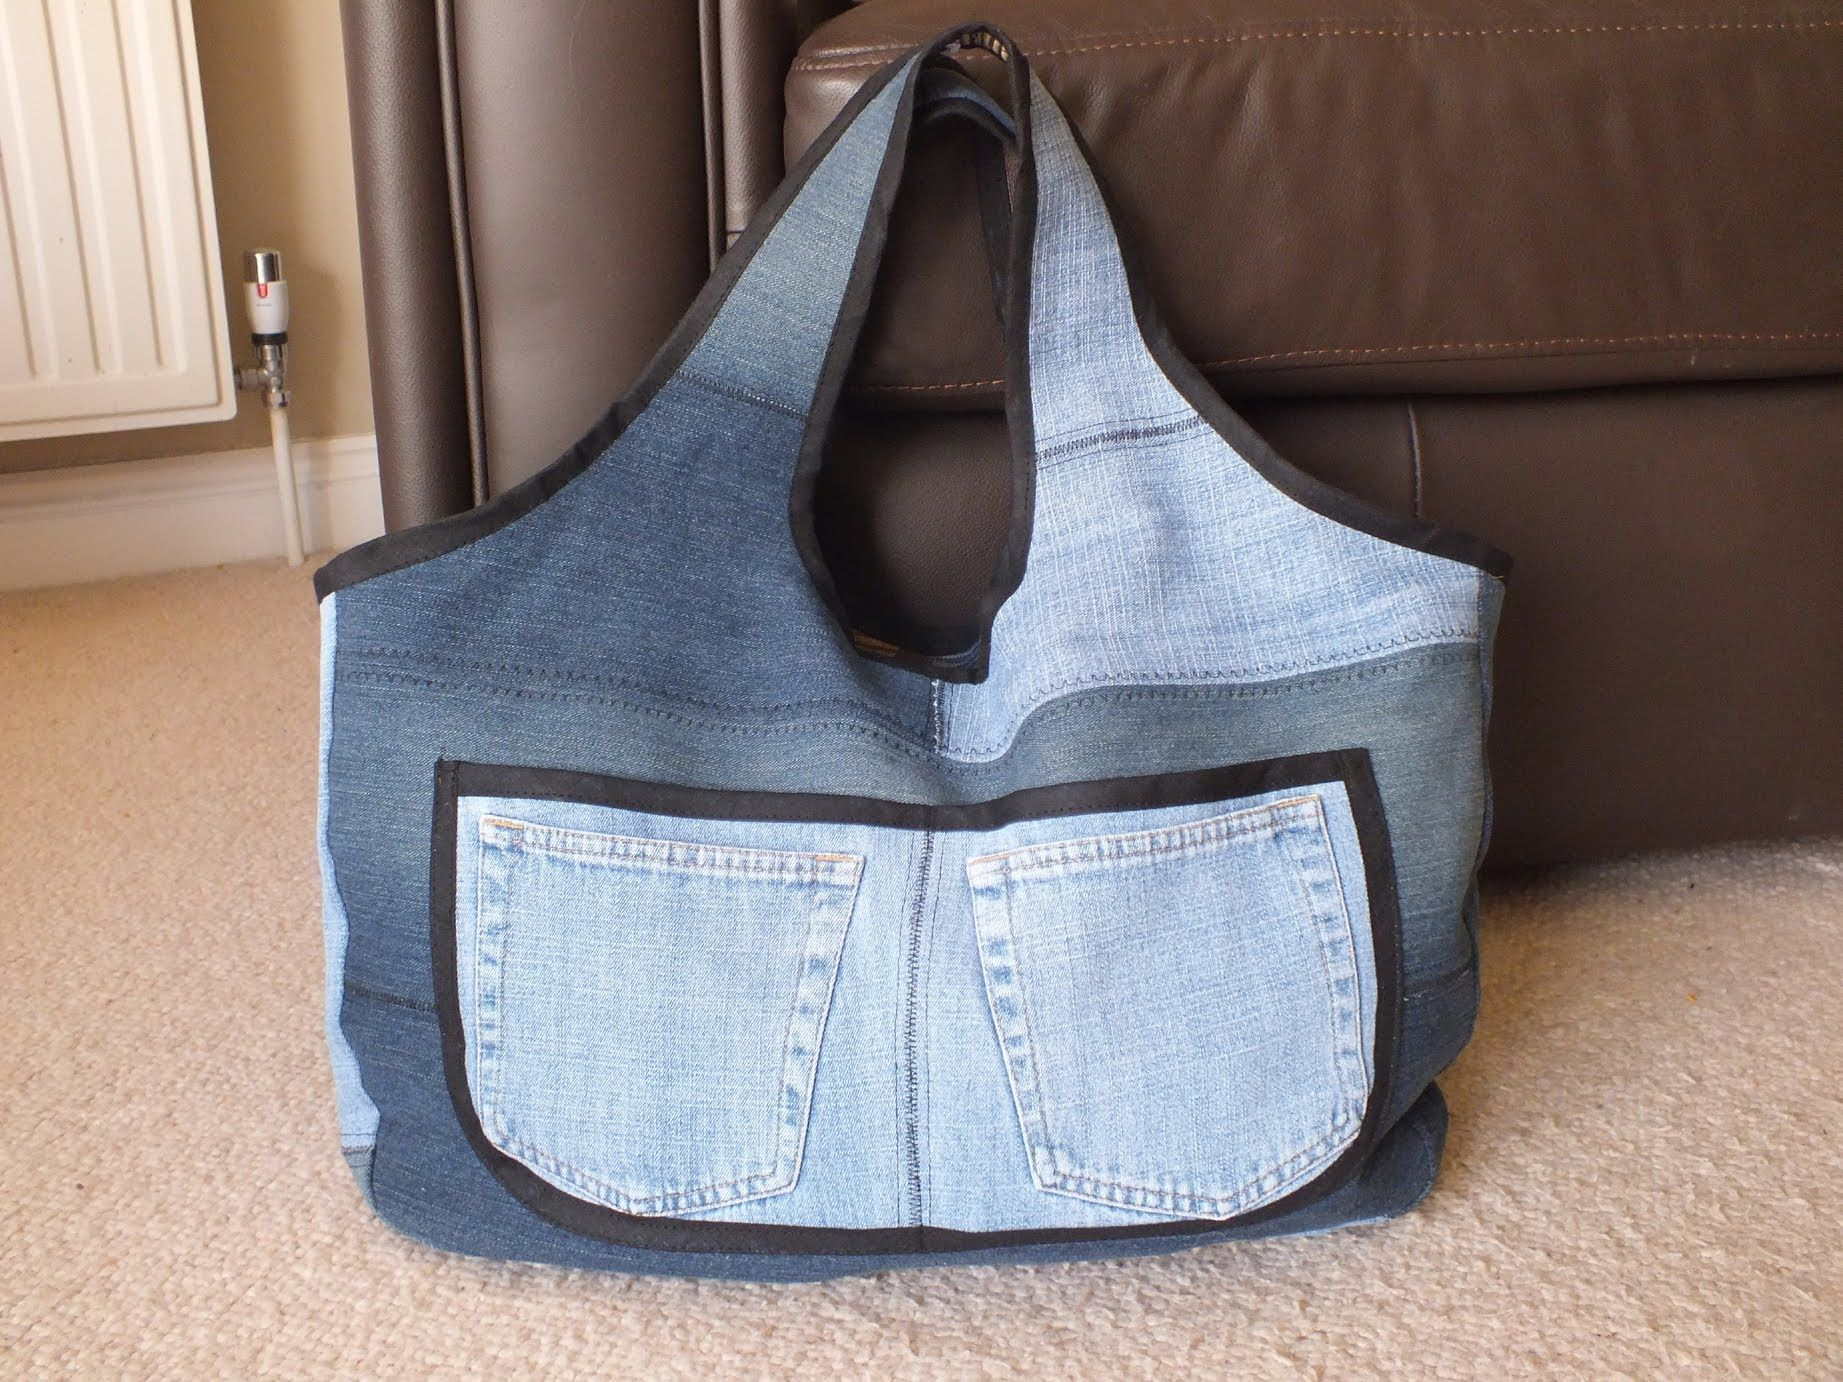 recycled jeans bag (sahara - 3) diy jeans bag / denim sewing